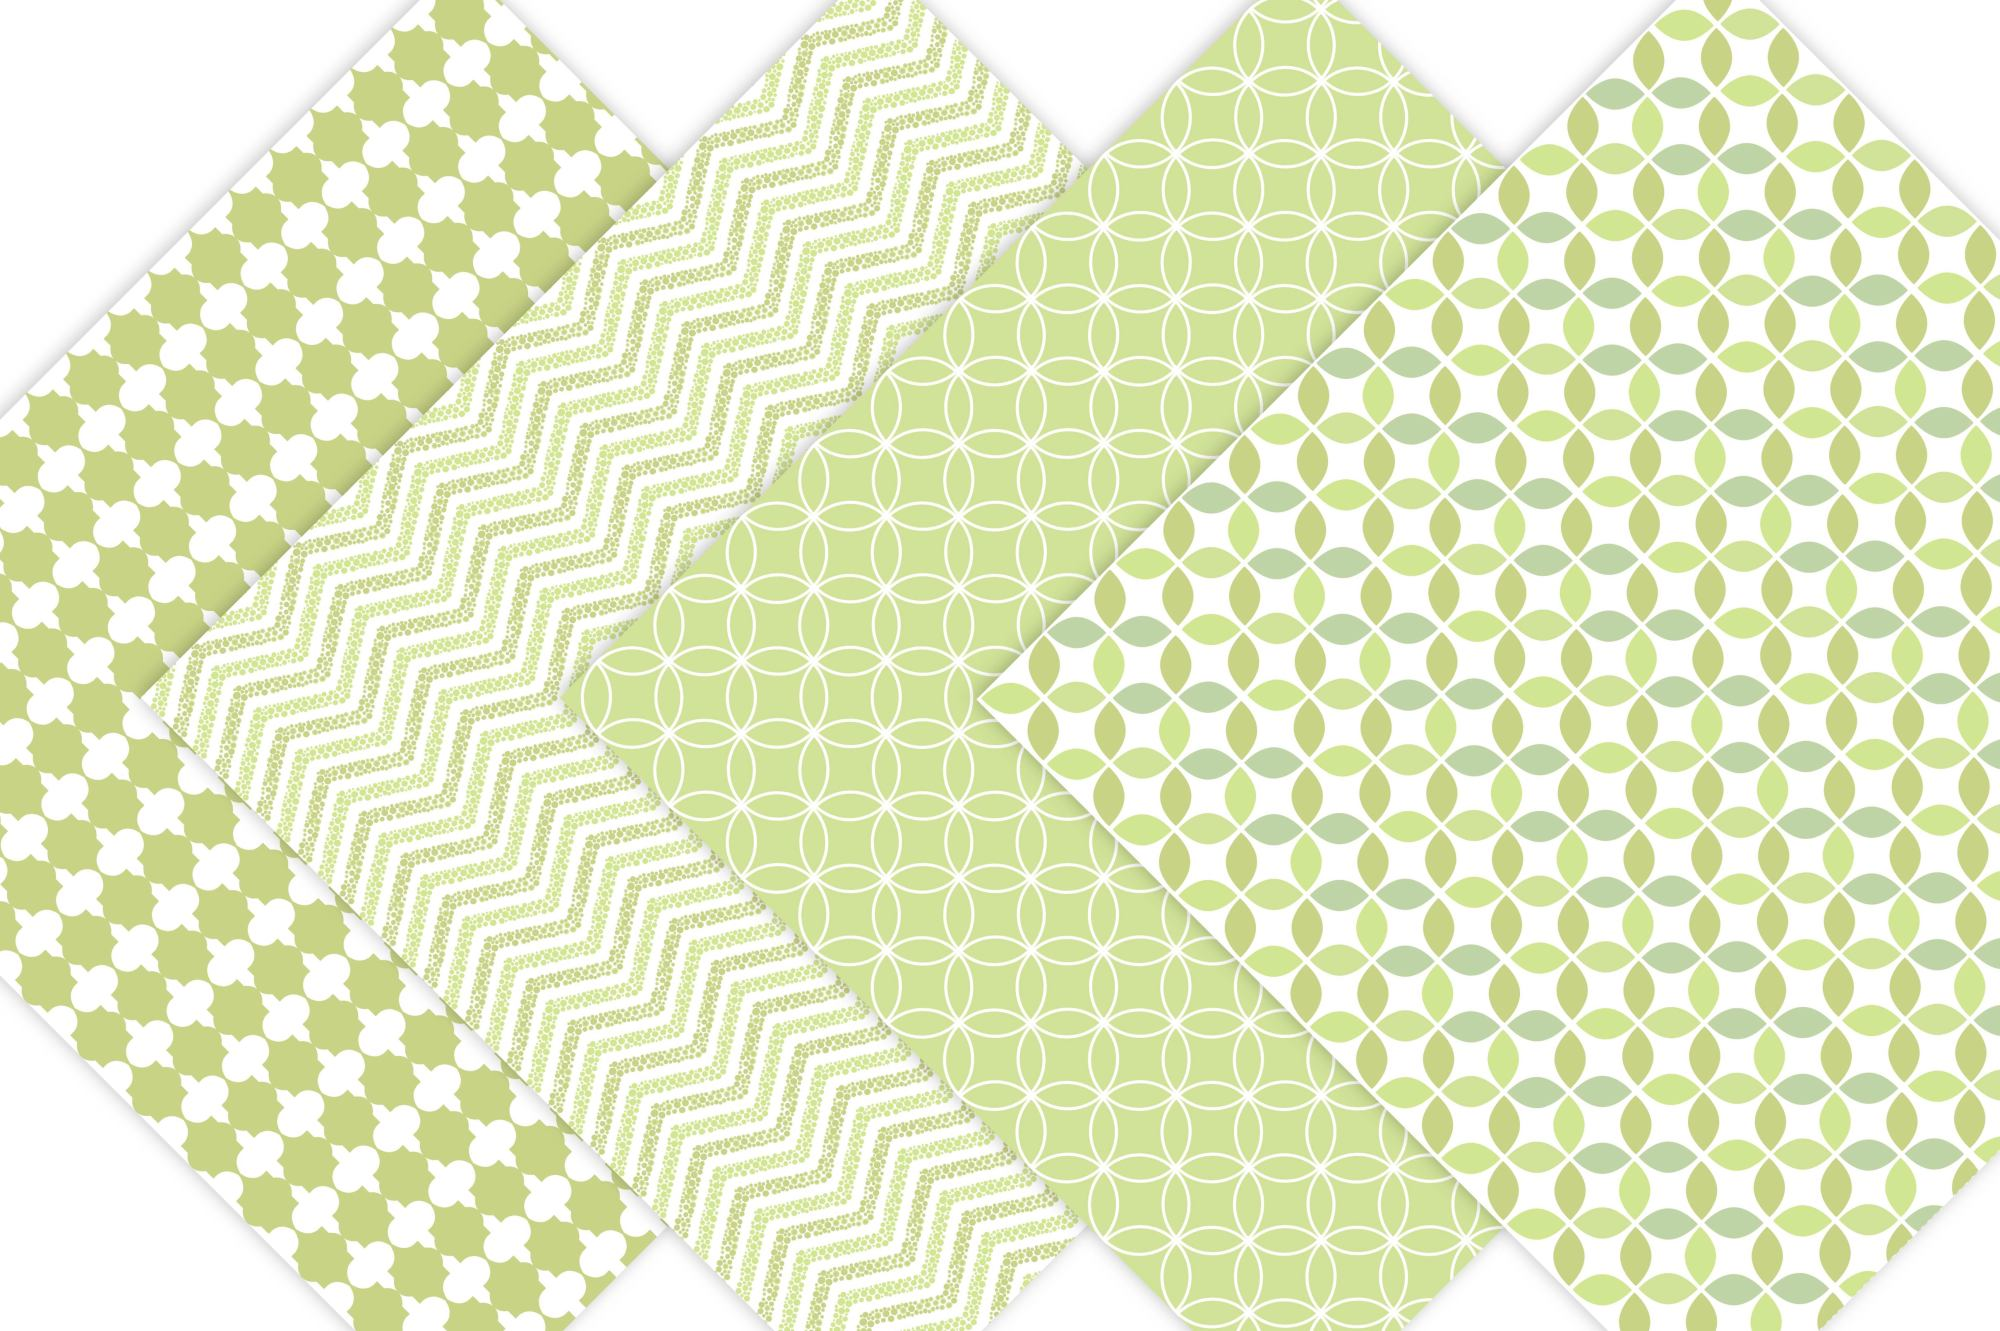 Lime Green Patterned Digital Paper example image 3